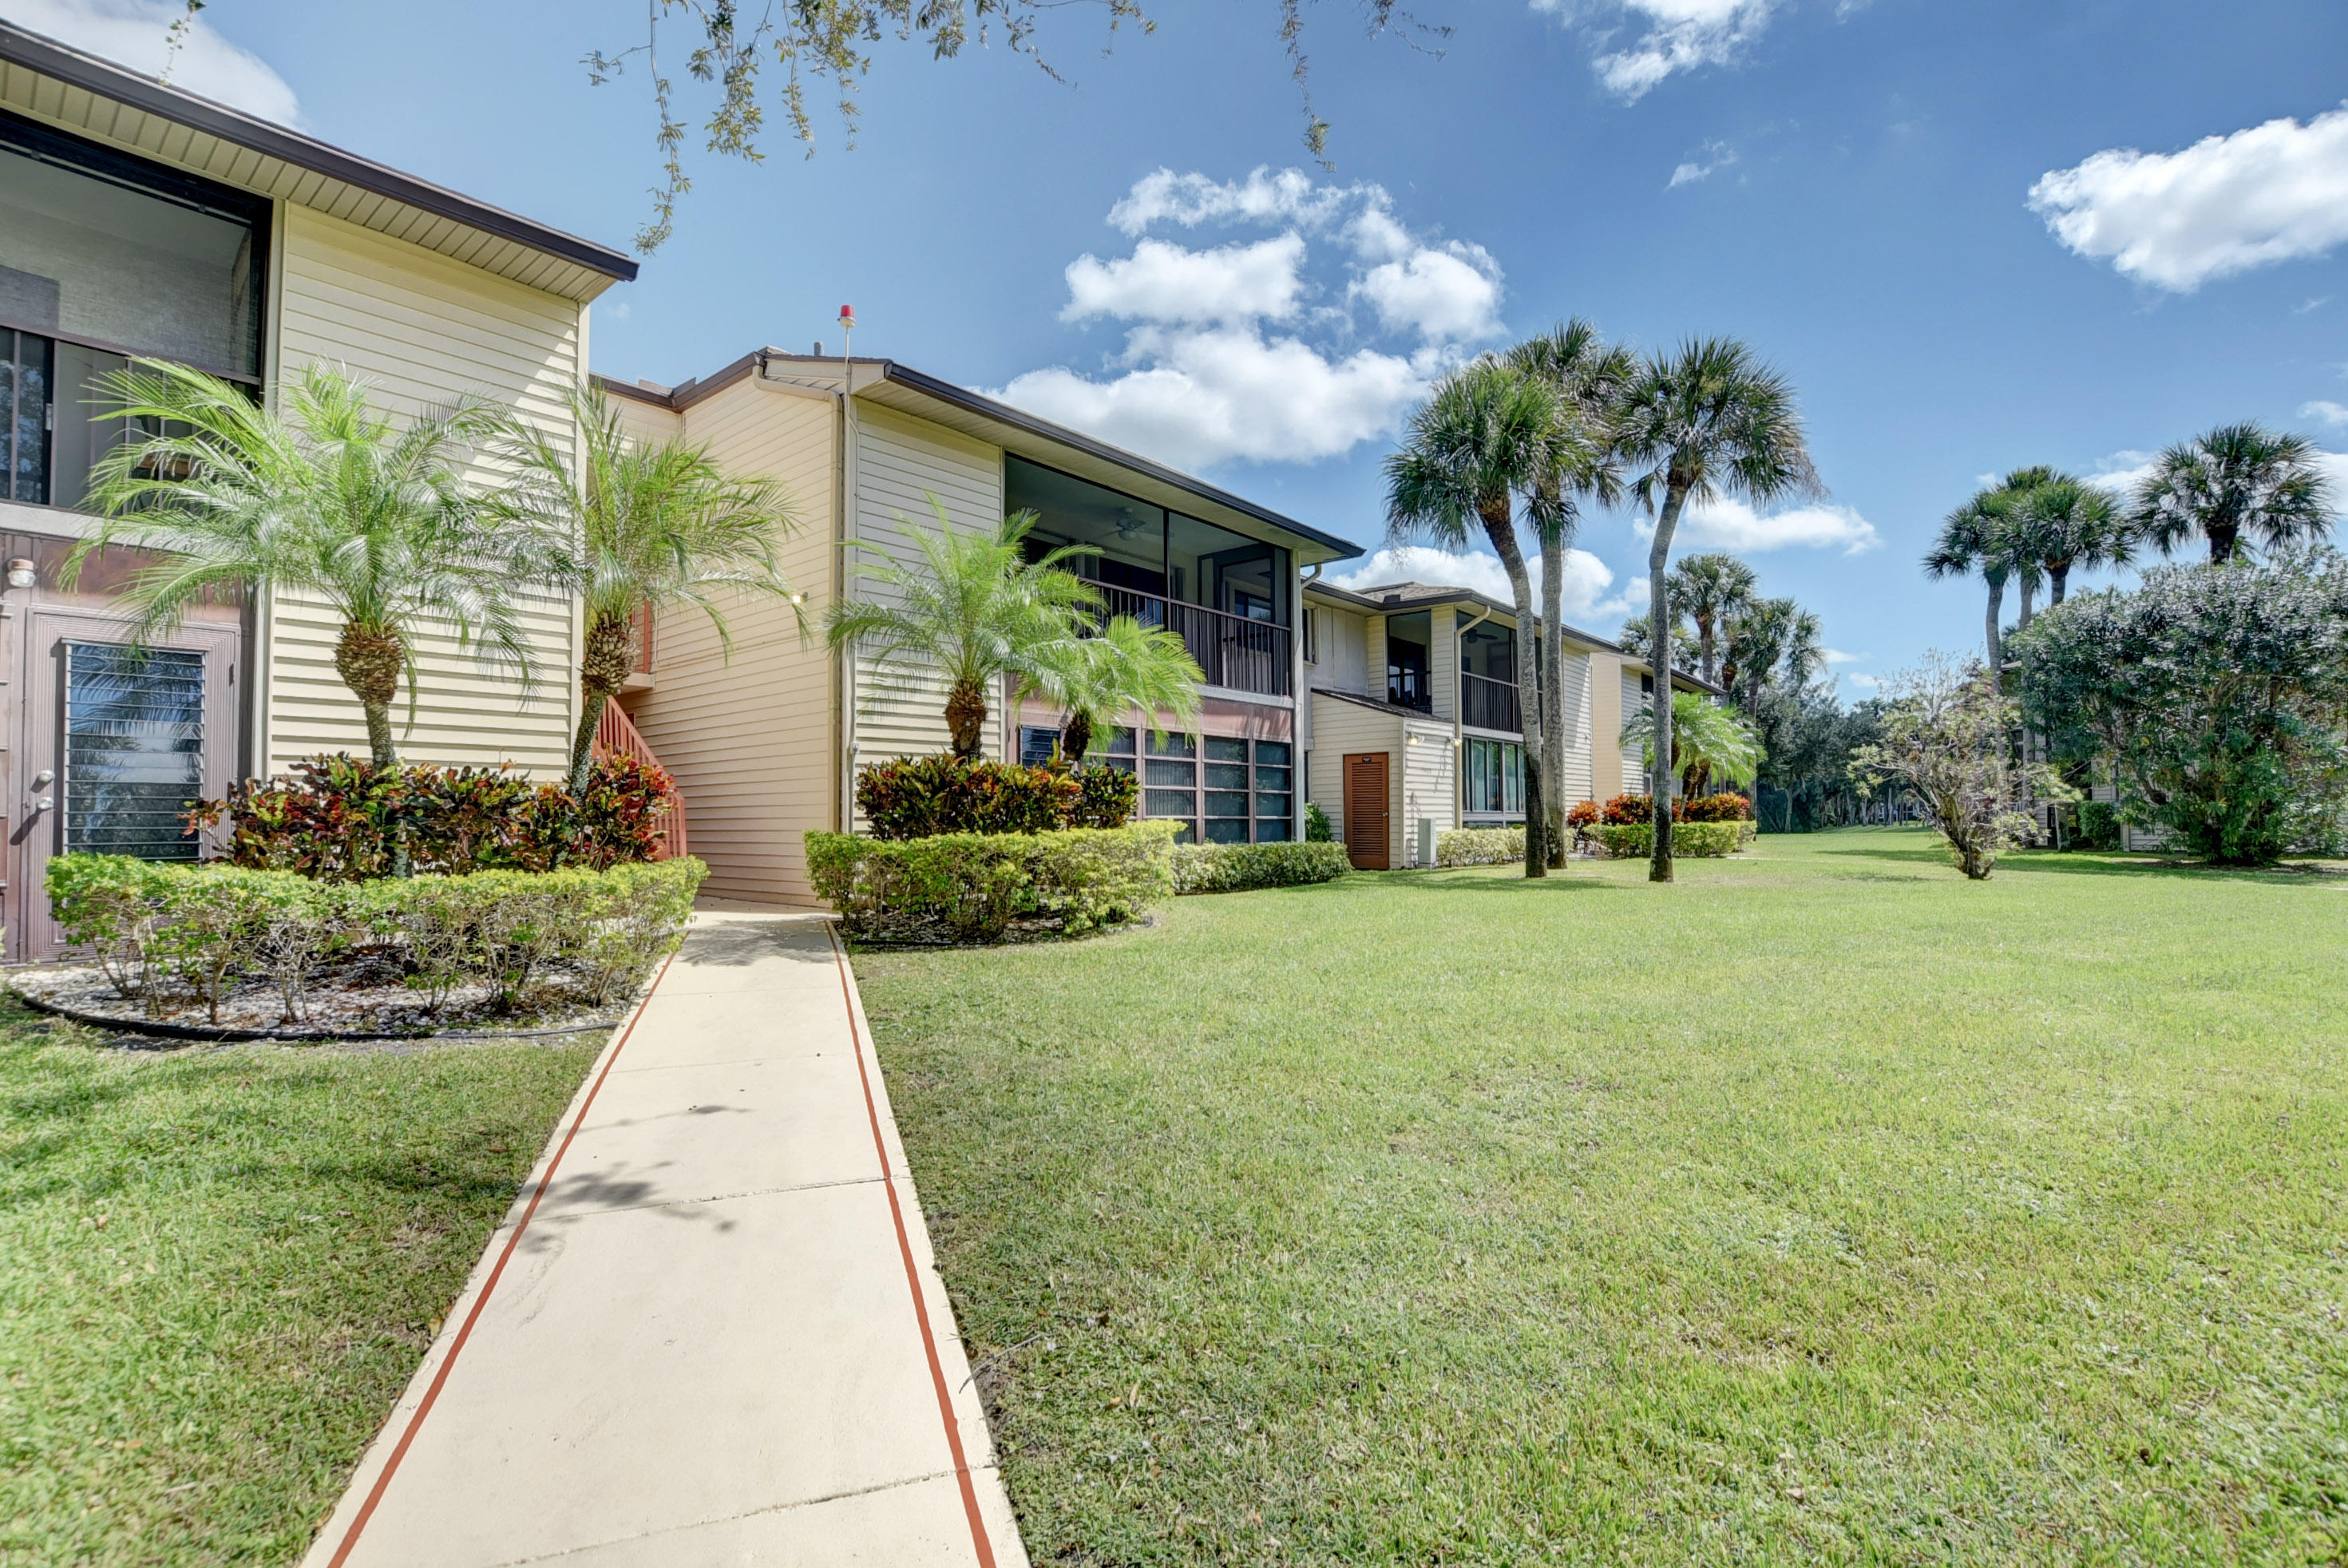 15488  Lakes Of Delray Boulevard 203 For Sale 10706804, FL